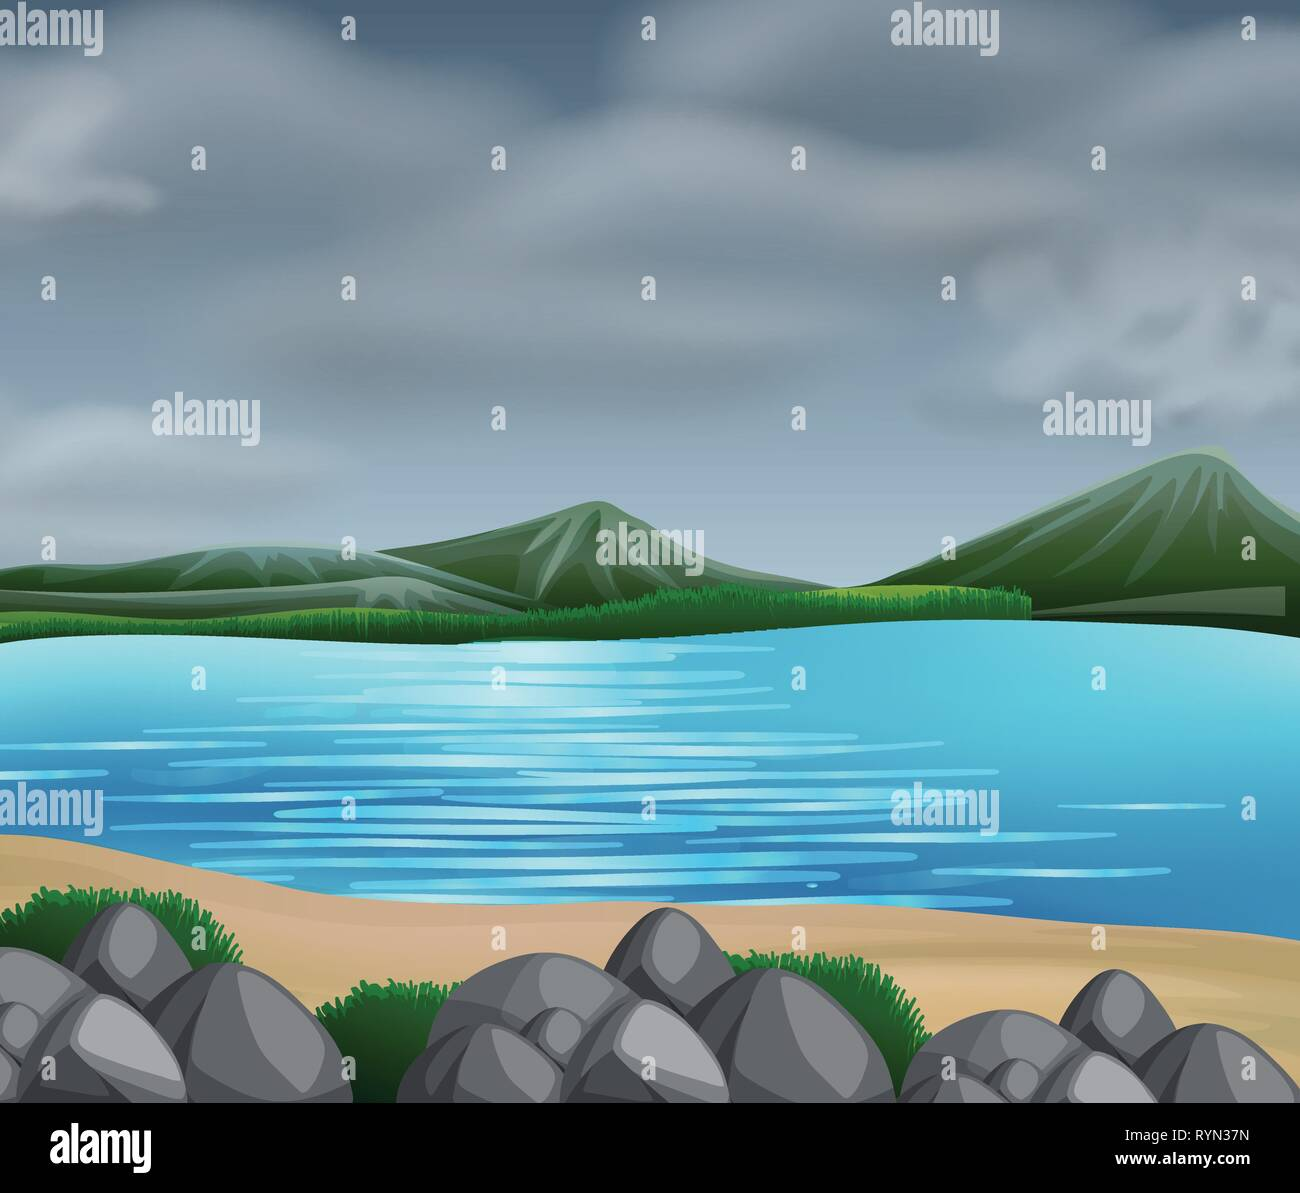 Cloudy by the Seaside illustration - Stock Vector